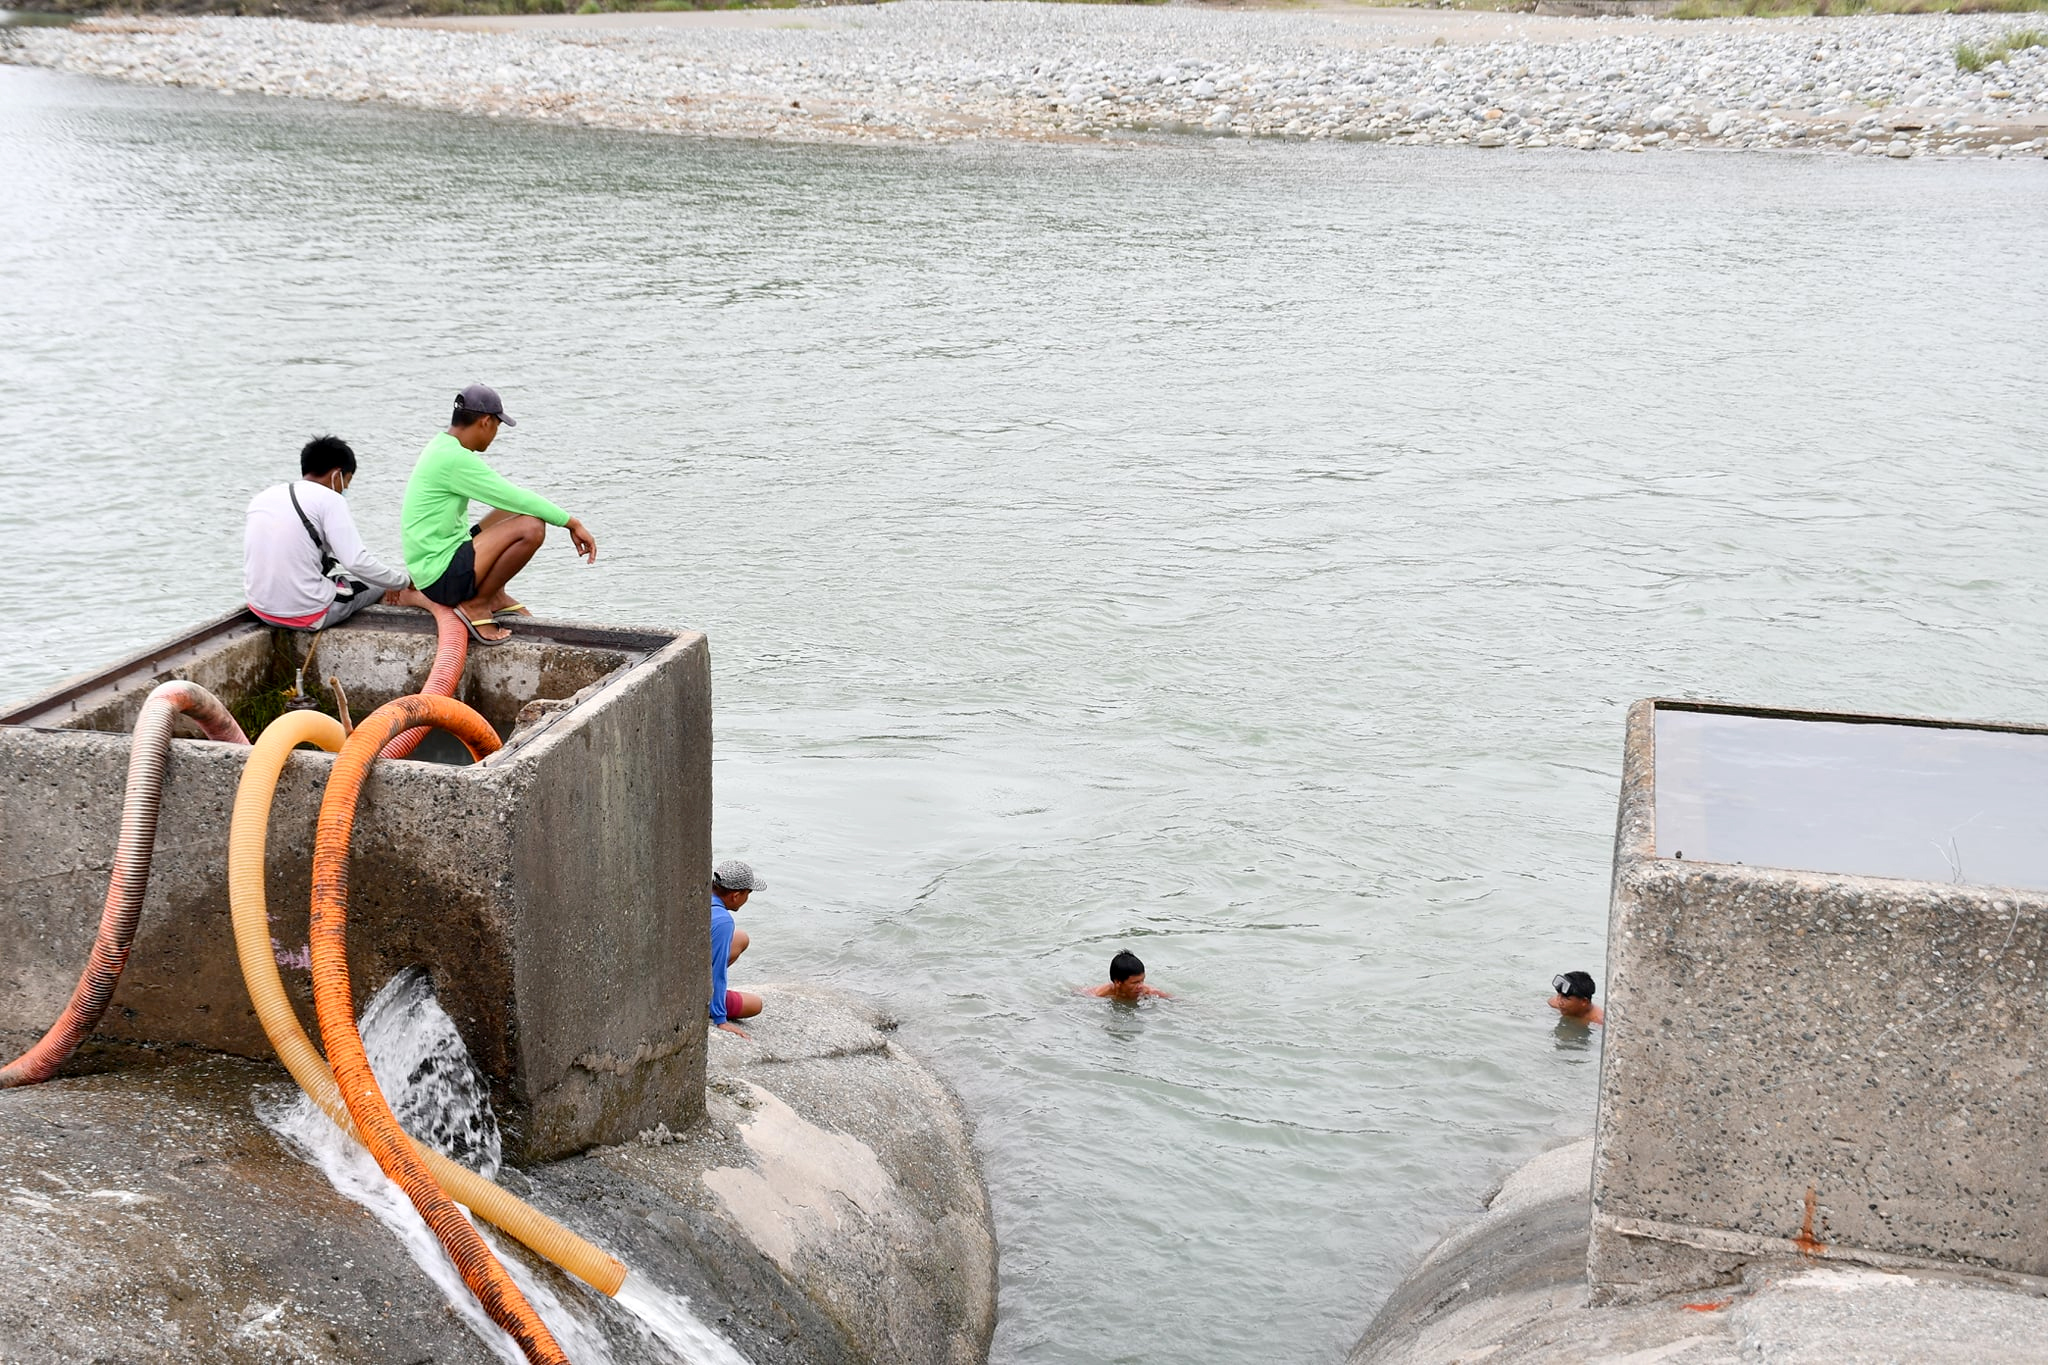 Concerted efforts of the NIA, BFP, IAs and other individuals were evident during the draining of the excess water at the 997-meter siphon barrel in preparation for the reinstallation of the displaced steel plate manhole cover, which was later found after two-day retrieval operation along the vast Chico River. Photo courtesy of NIA Kalinga IMO